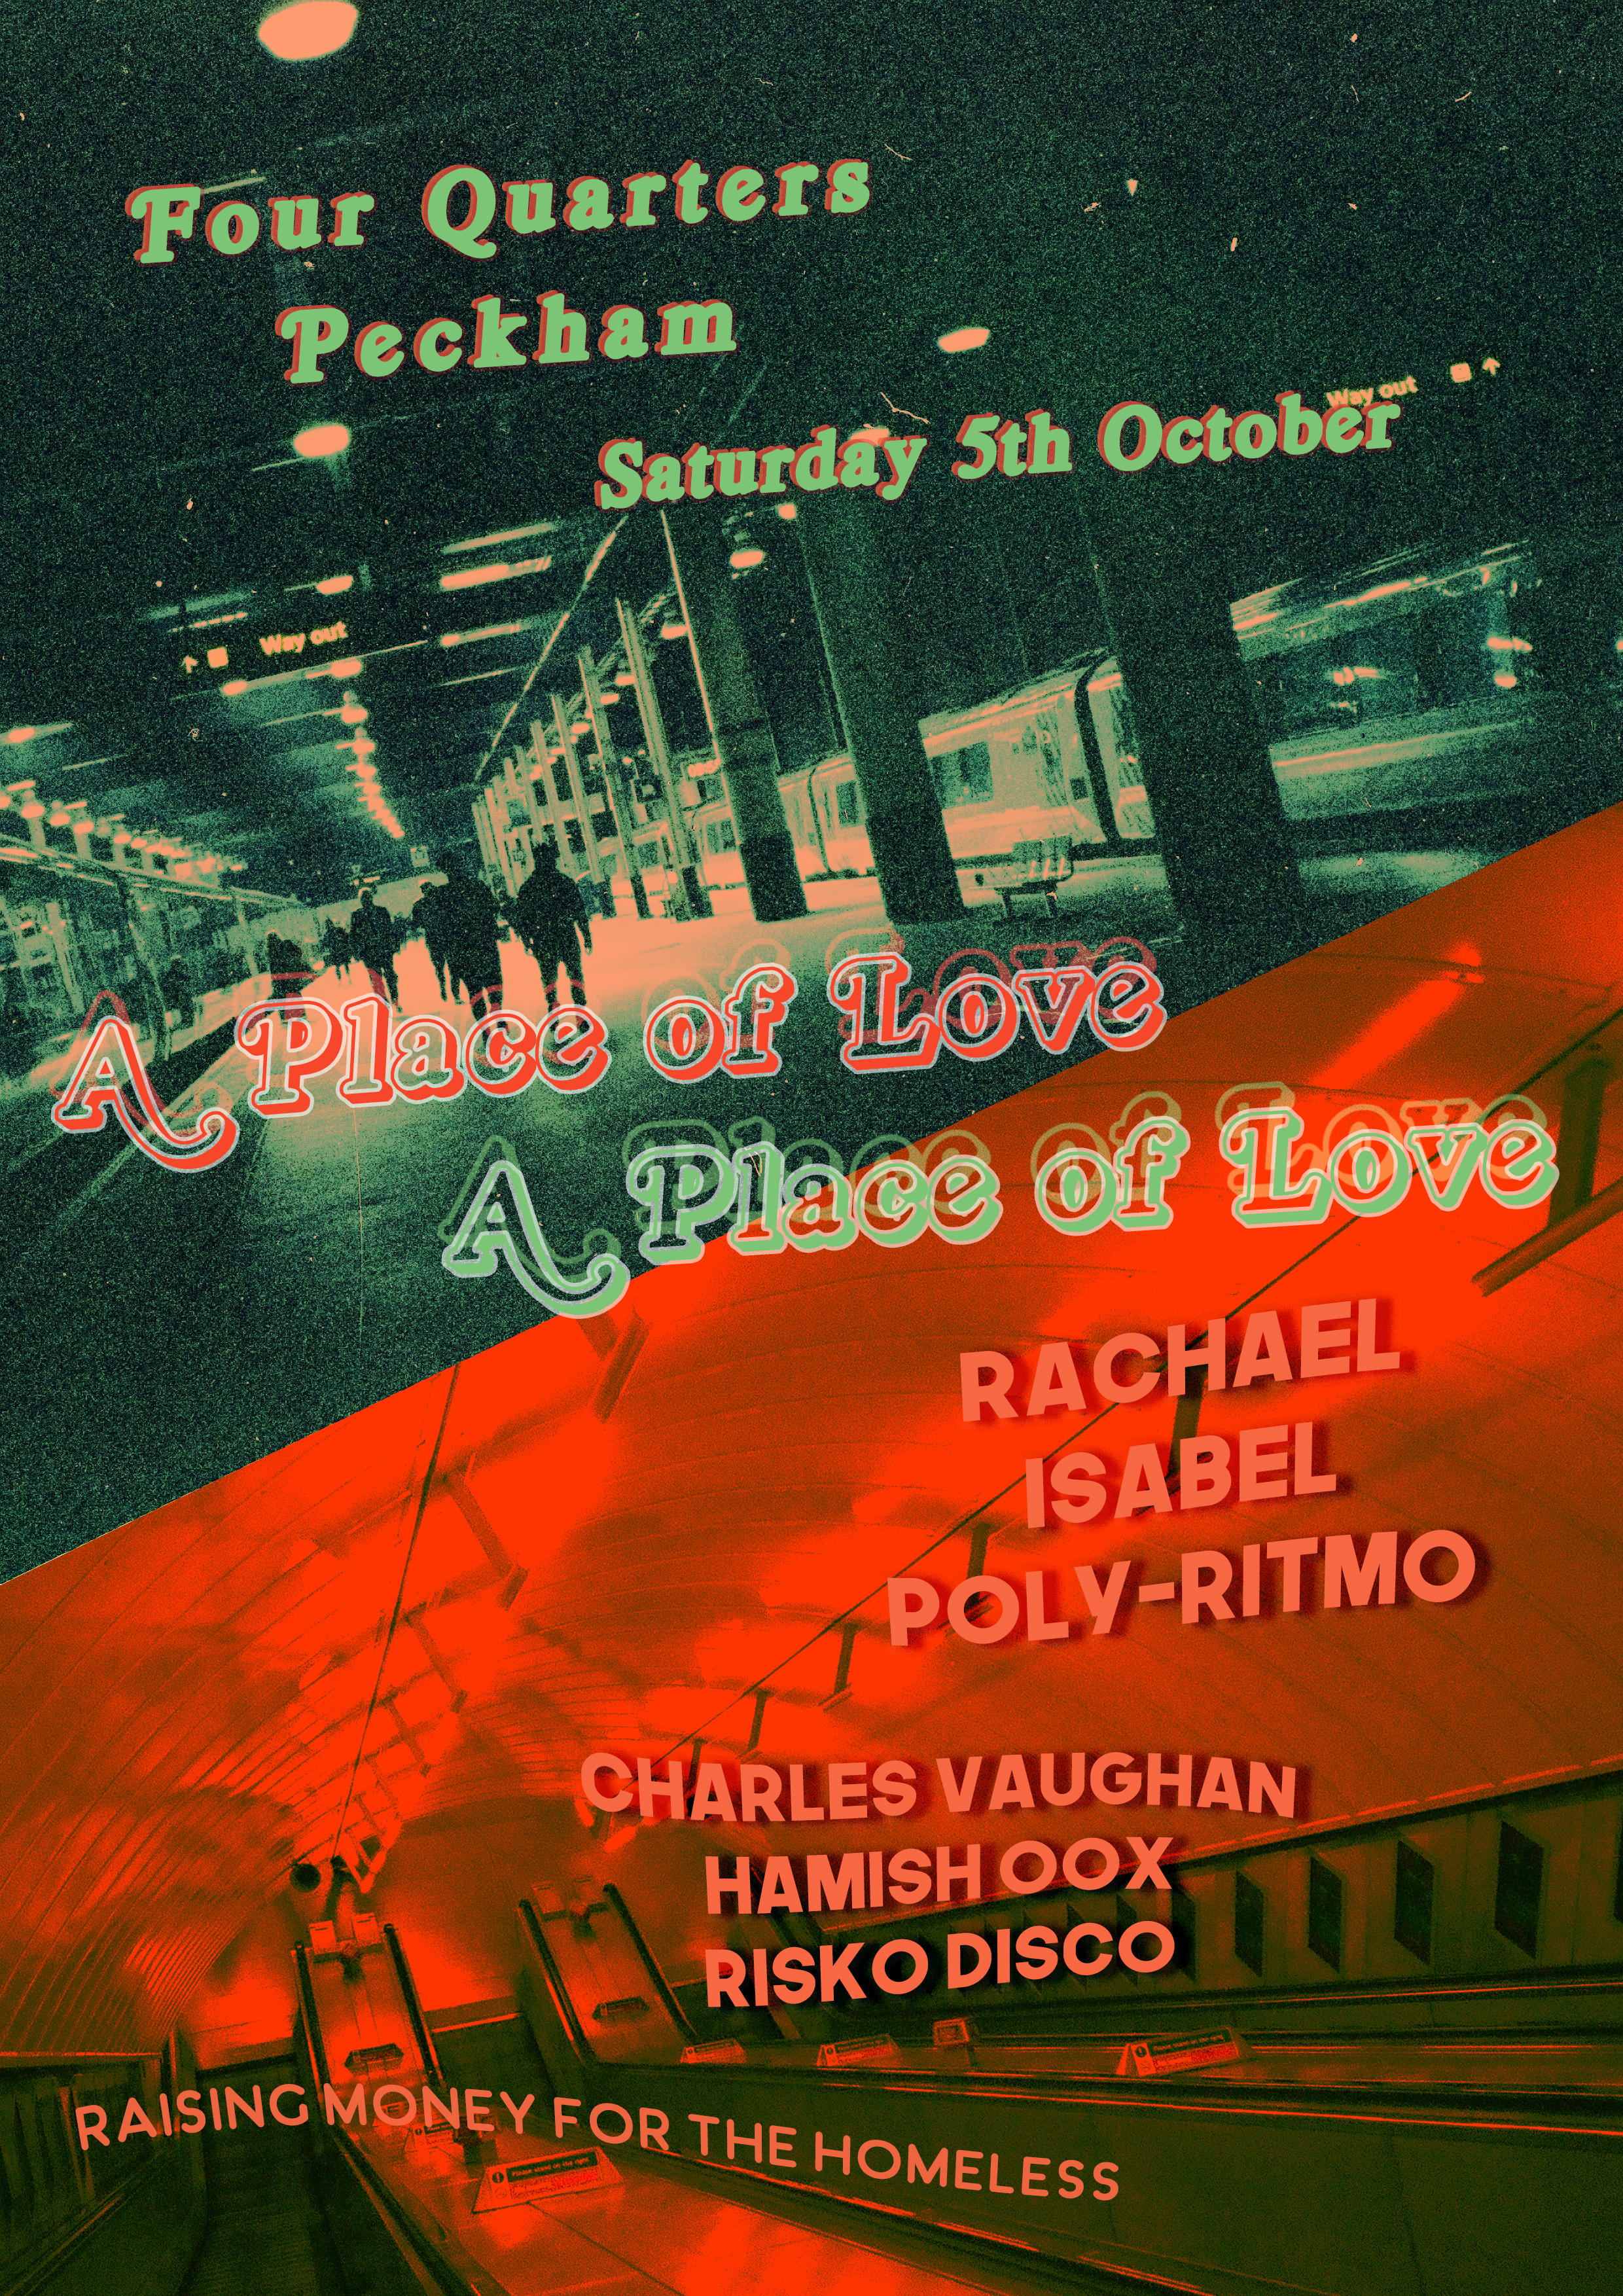 Rachael, Poly-Ritmo & Slinkykinky - For our first party we're welcoming a power house of disco talent from across London. Headlining will be Rye Wax's legendary Rachael with support from SOTU's Poly-Ritmo and Slinkykinky. The dance will be split over two rooms and run into the early hours, see you on the dance floor…